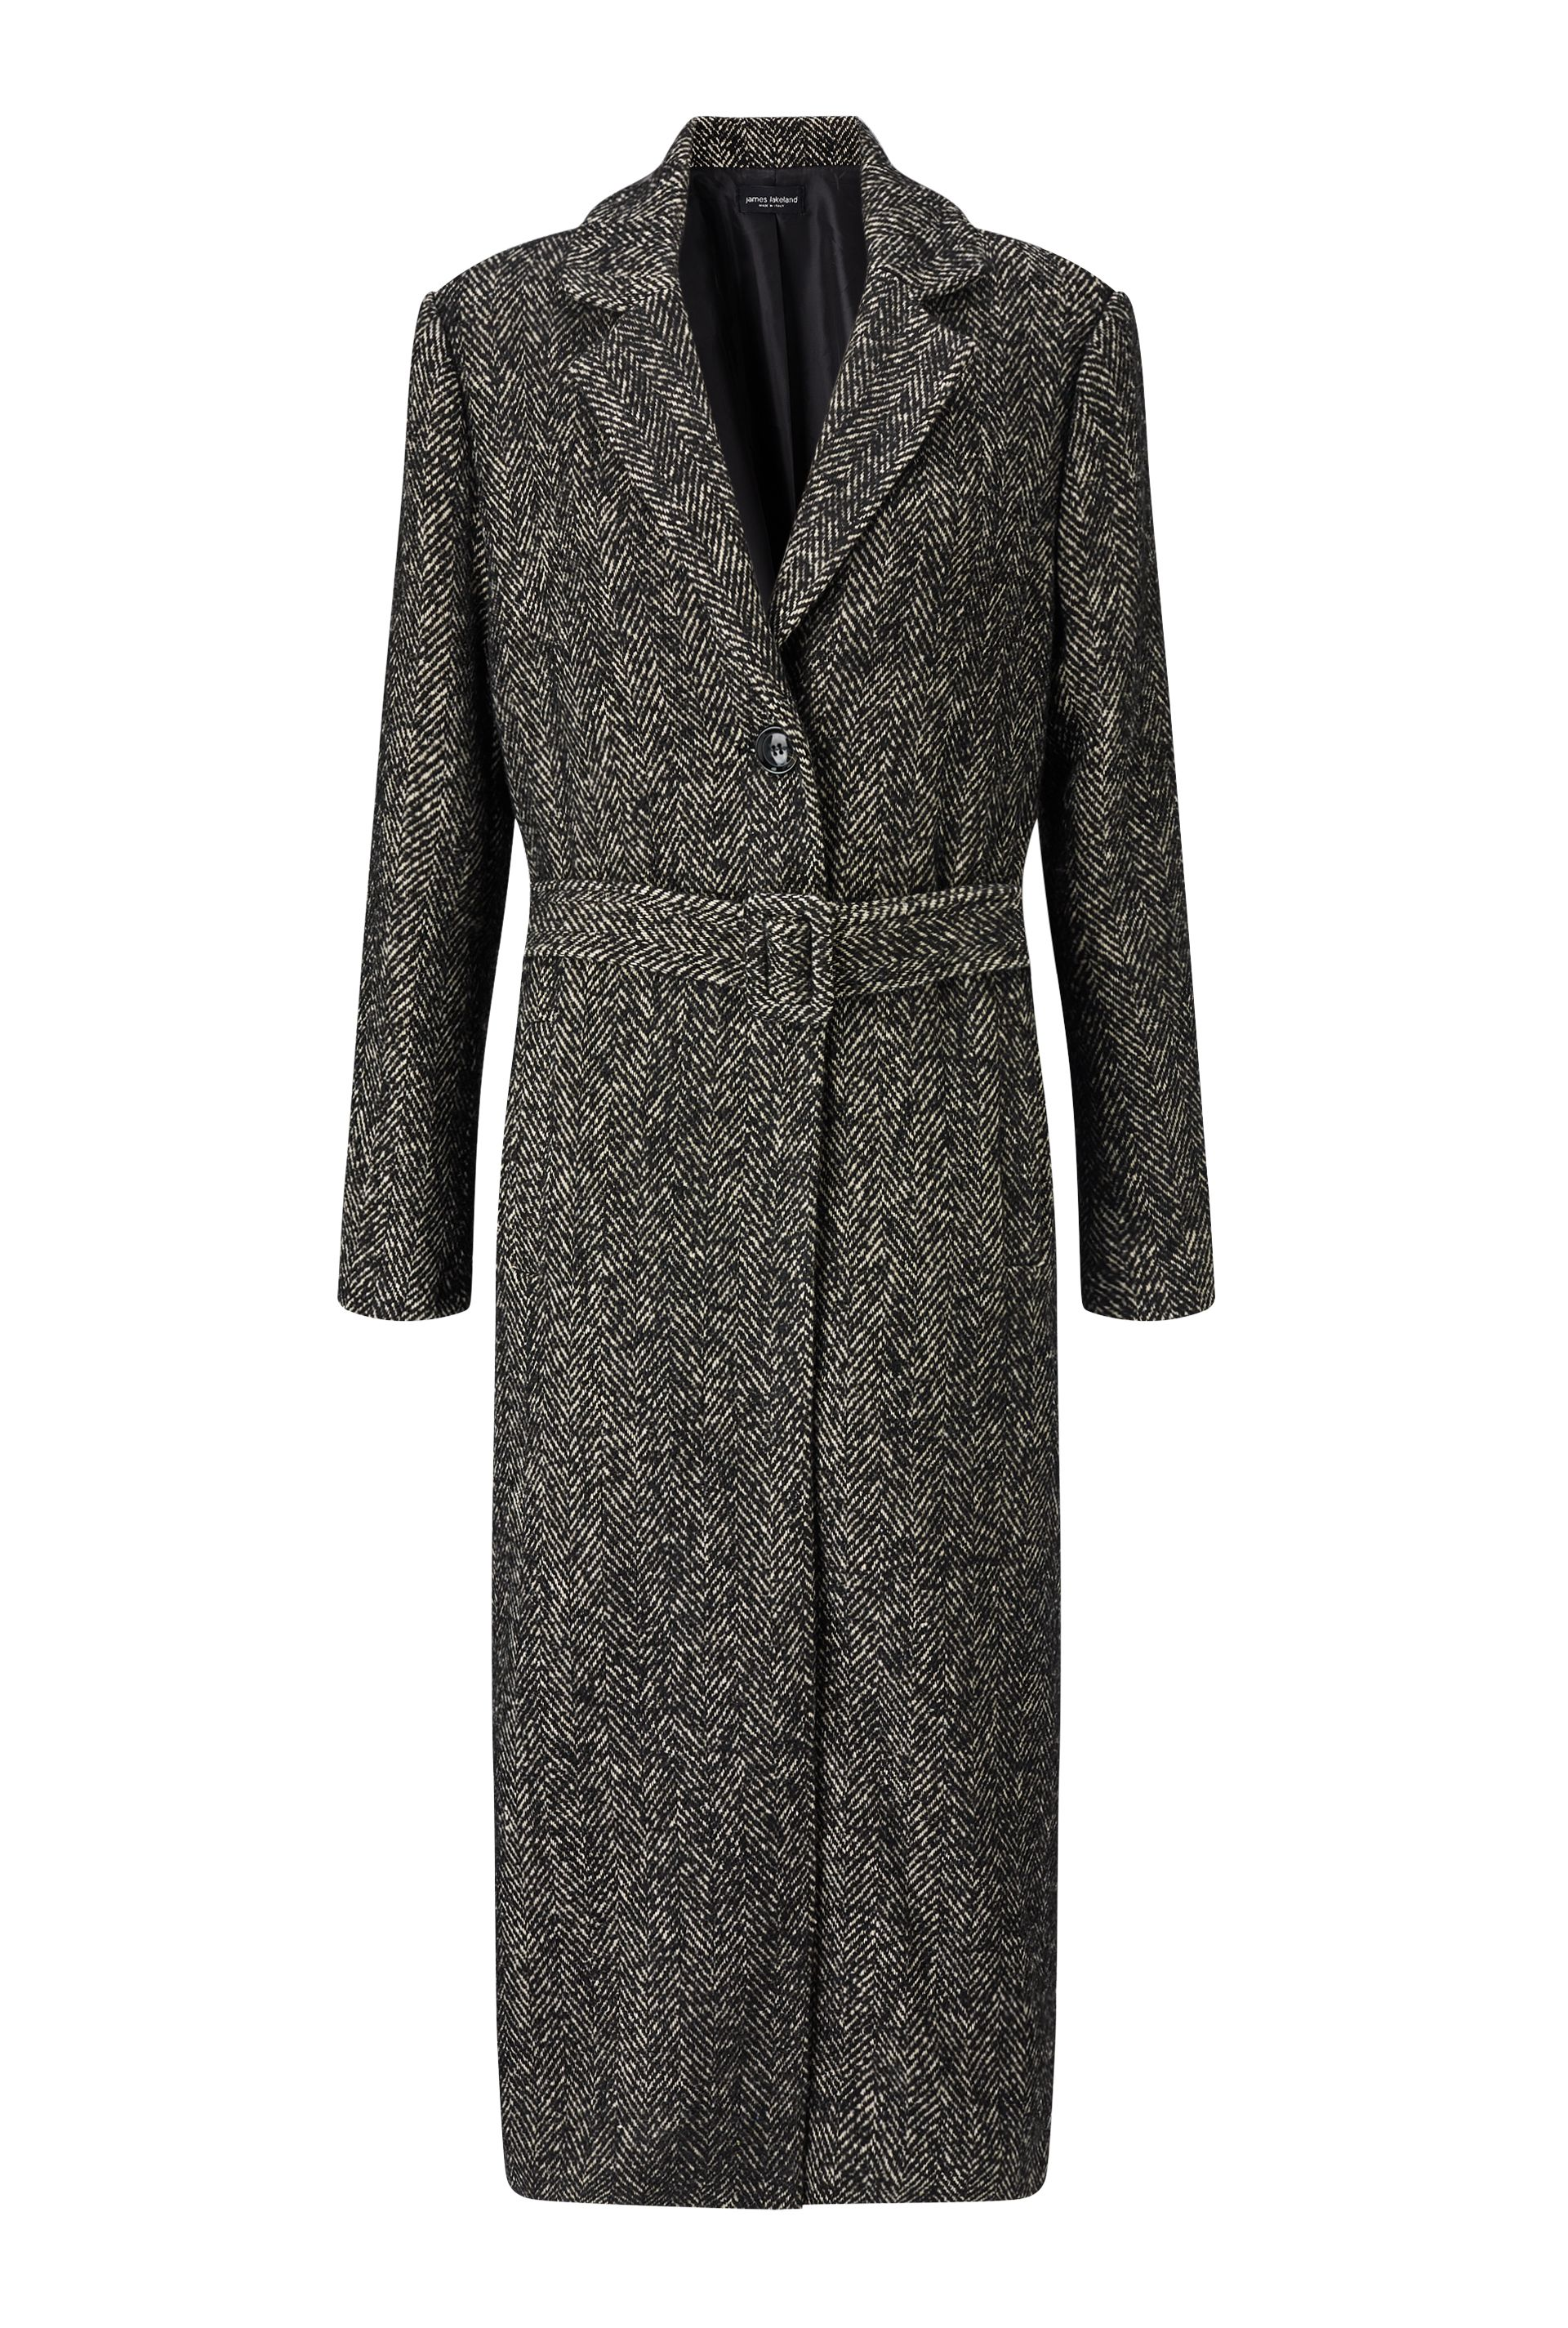 James Lakeland Long Salt And Pepper Coat, White